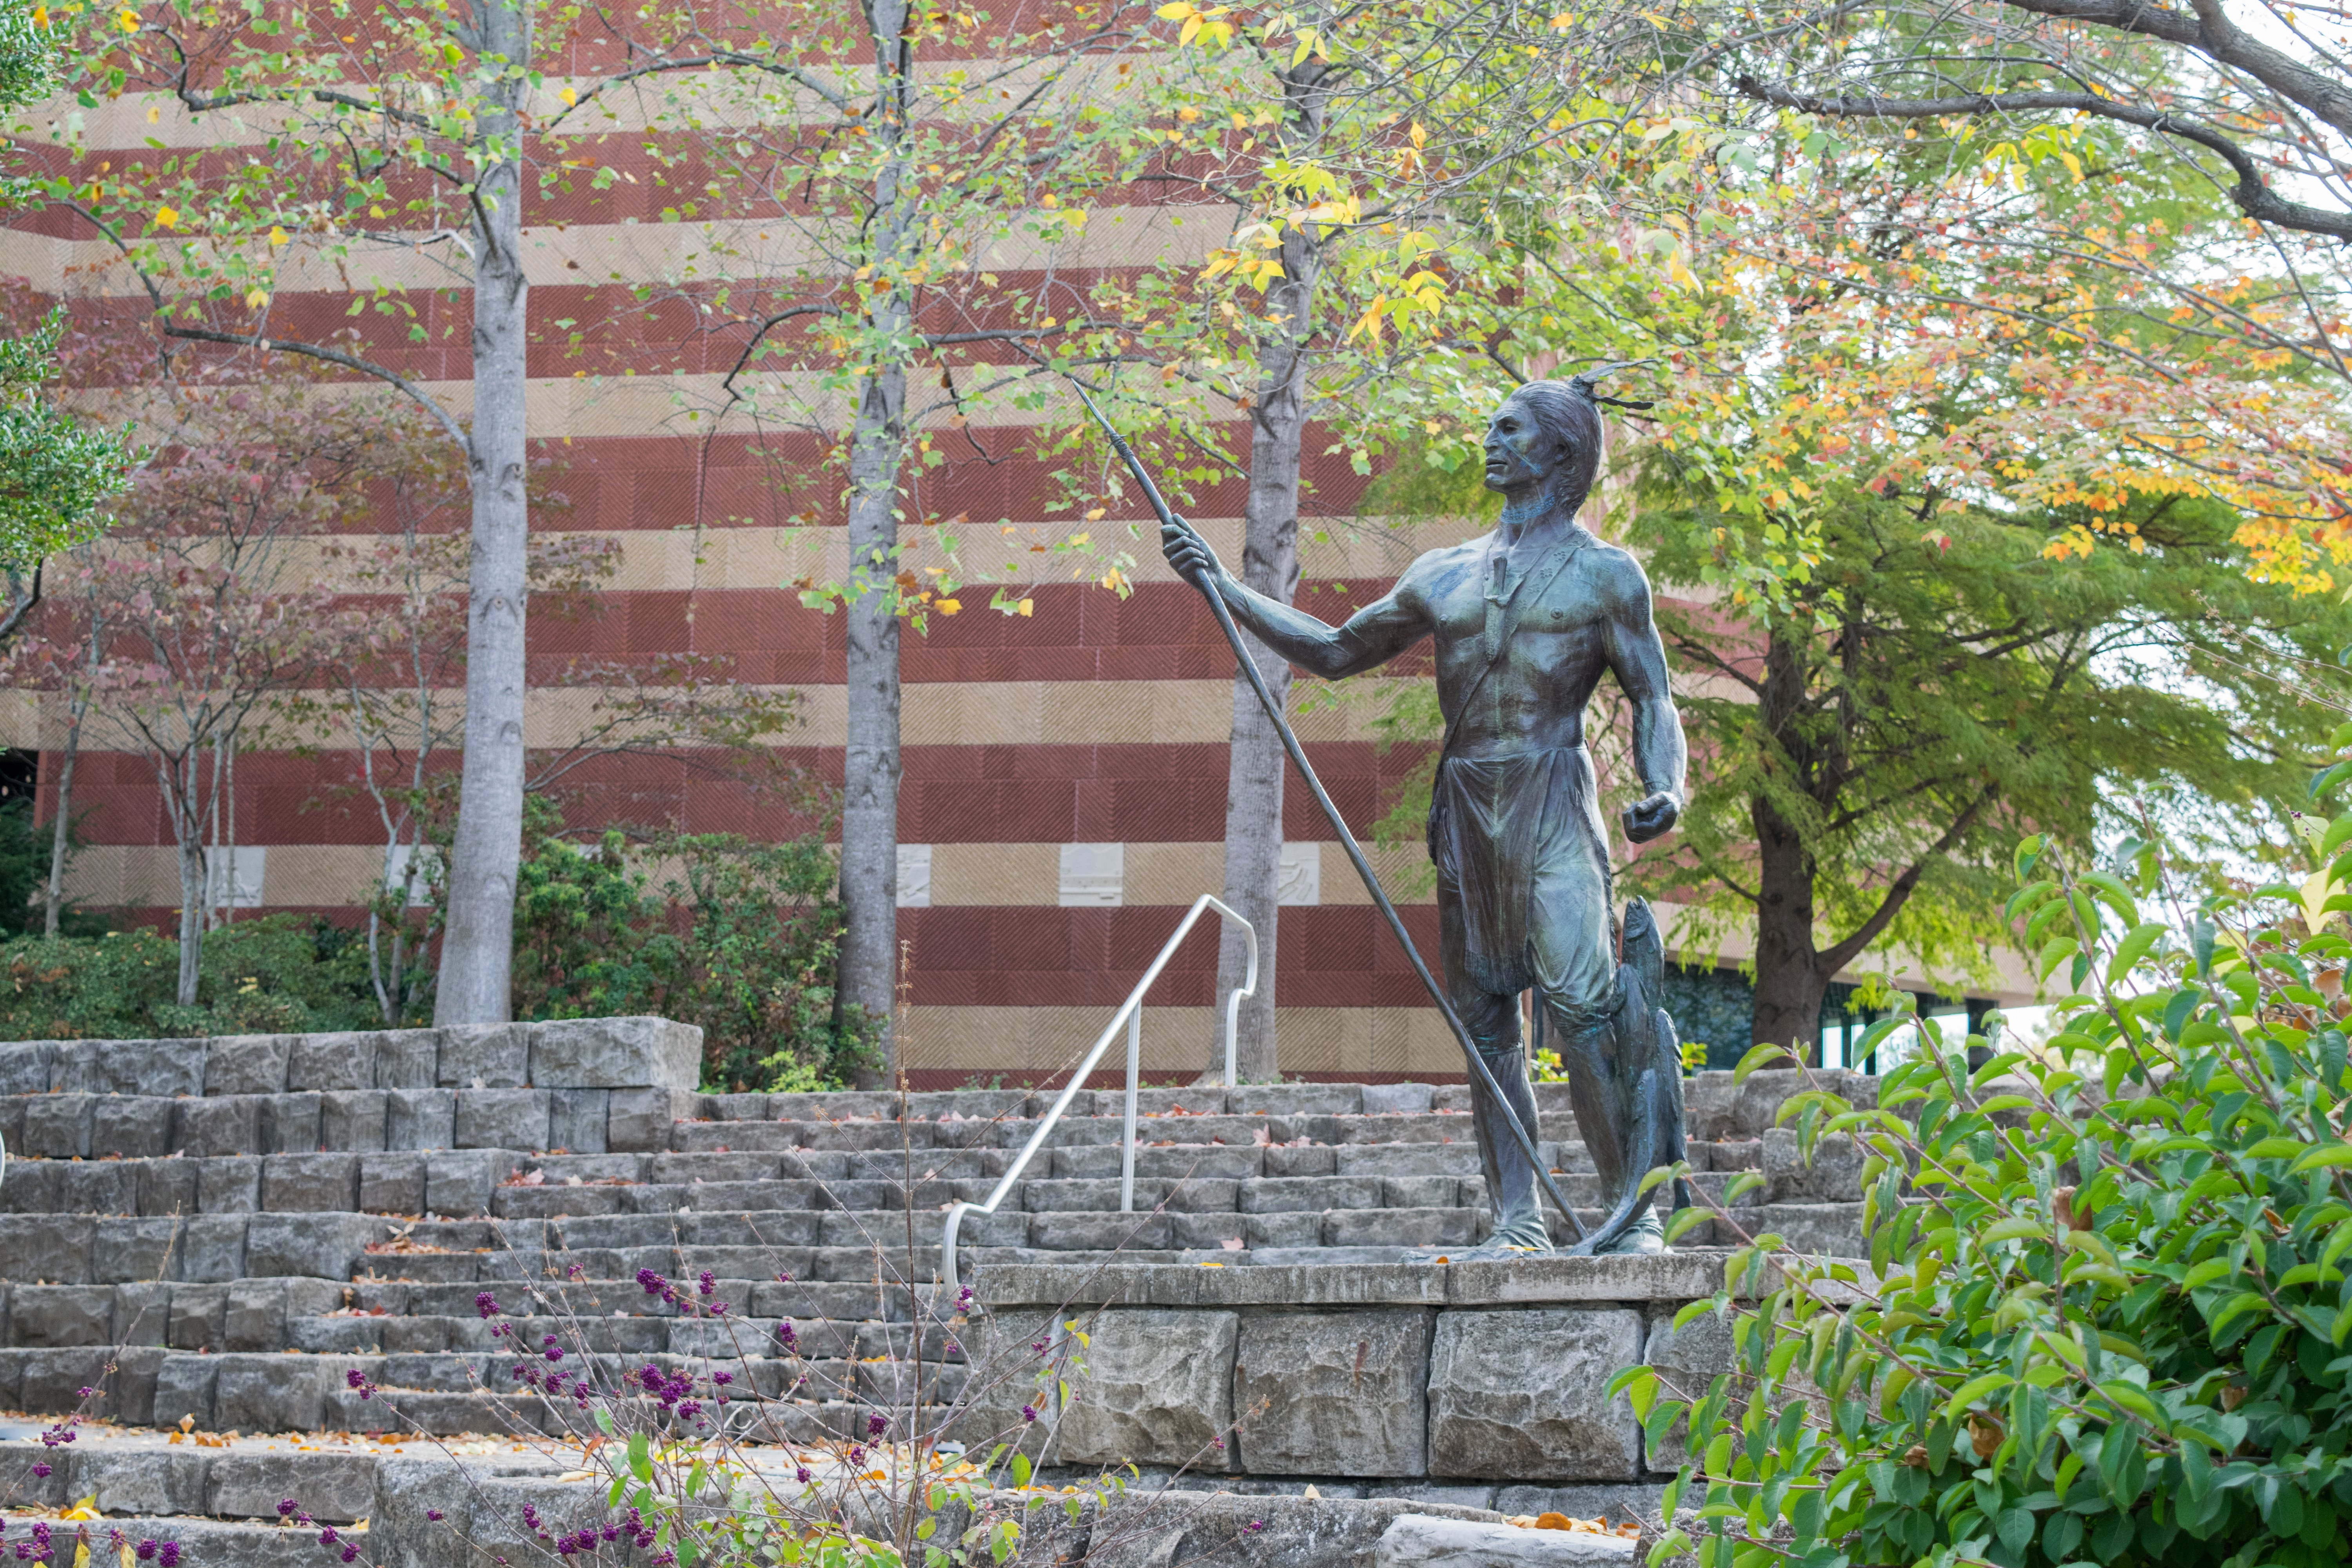 Statue of Cherokee at river bank with fish - Walk Cha Tour in Chattanooga